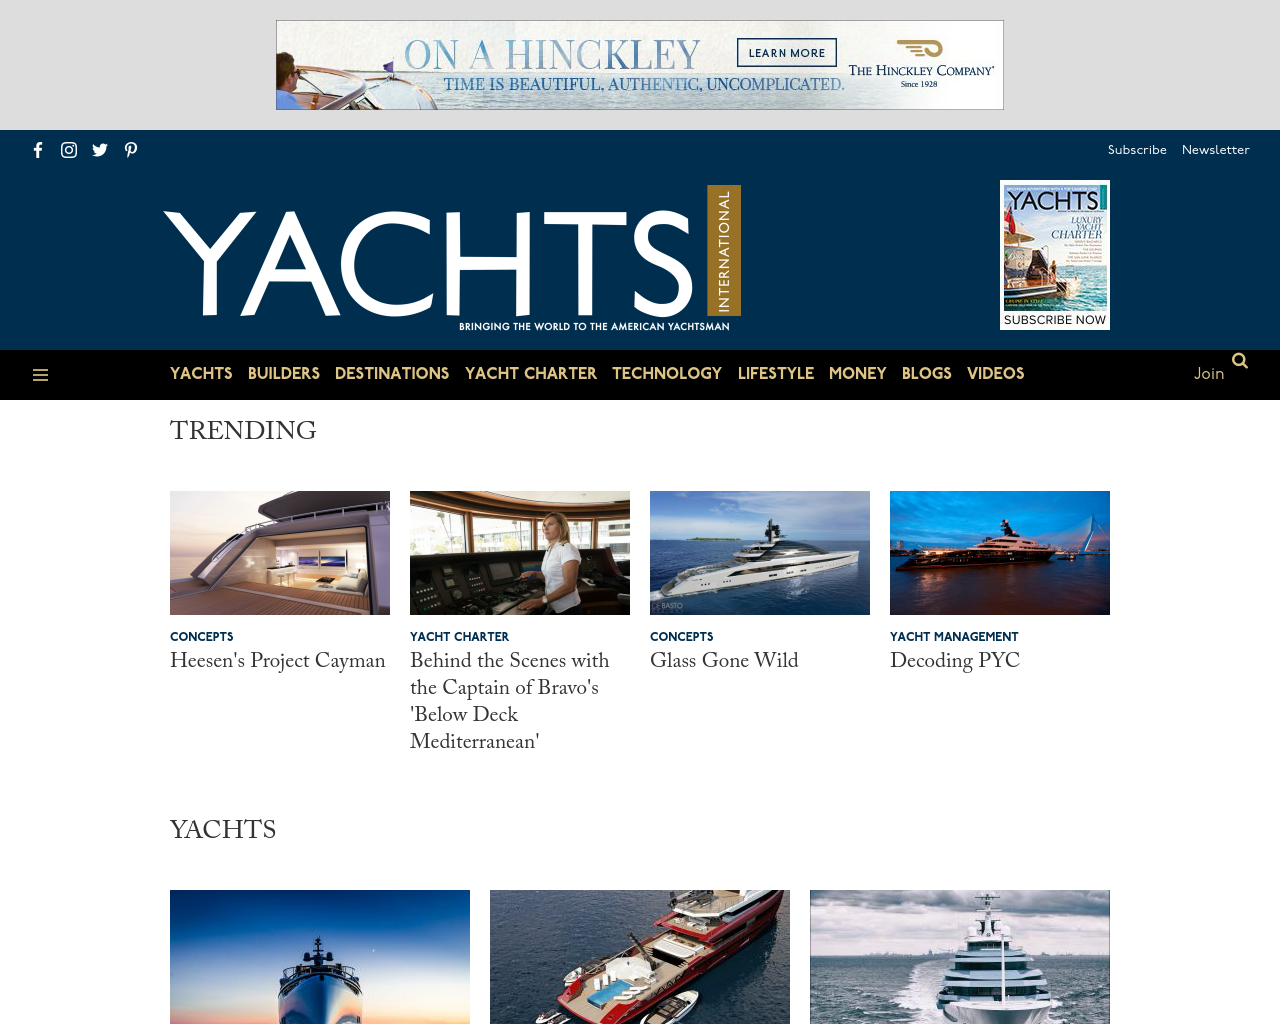 Yachts-International-Advertising-Reviews-Pricing